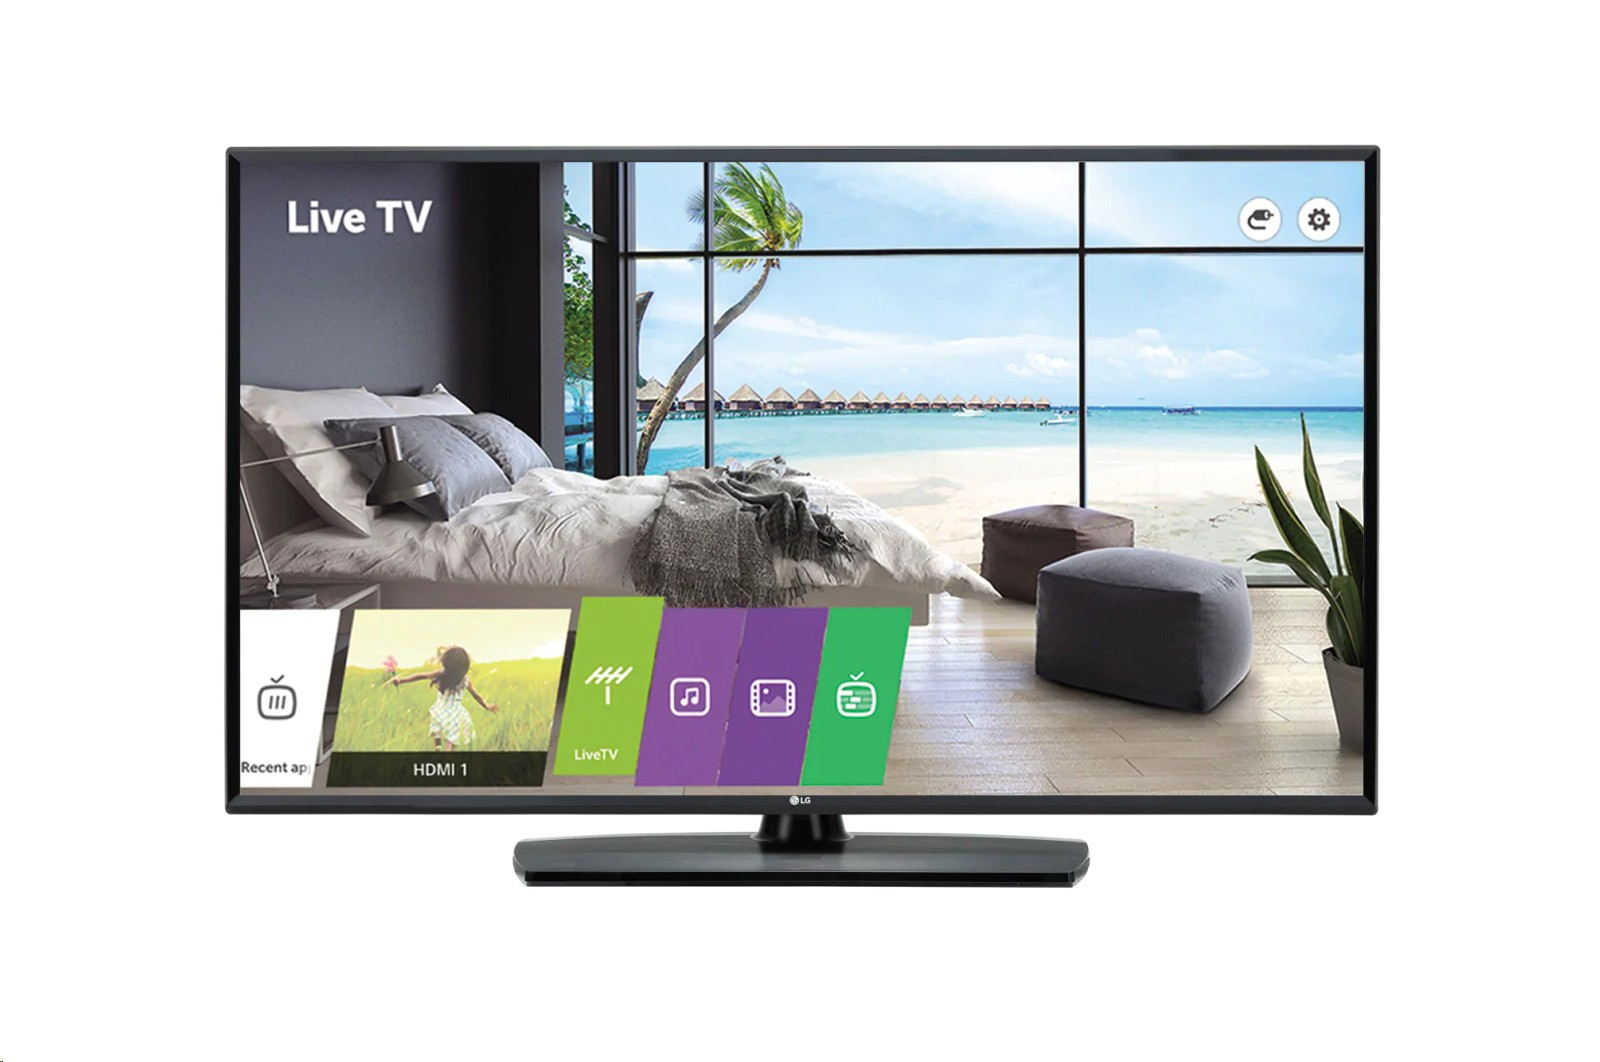 Lg Electronics 43 43LT560H Full Hd 1080p Hdmi Usb RS232 RJ45 Commercial Tv